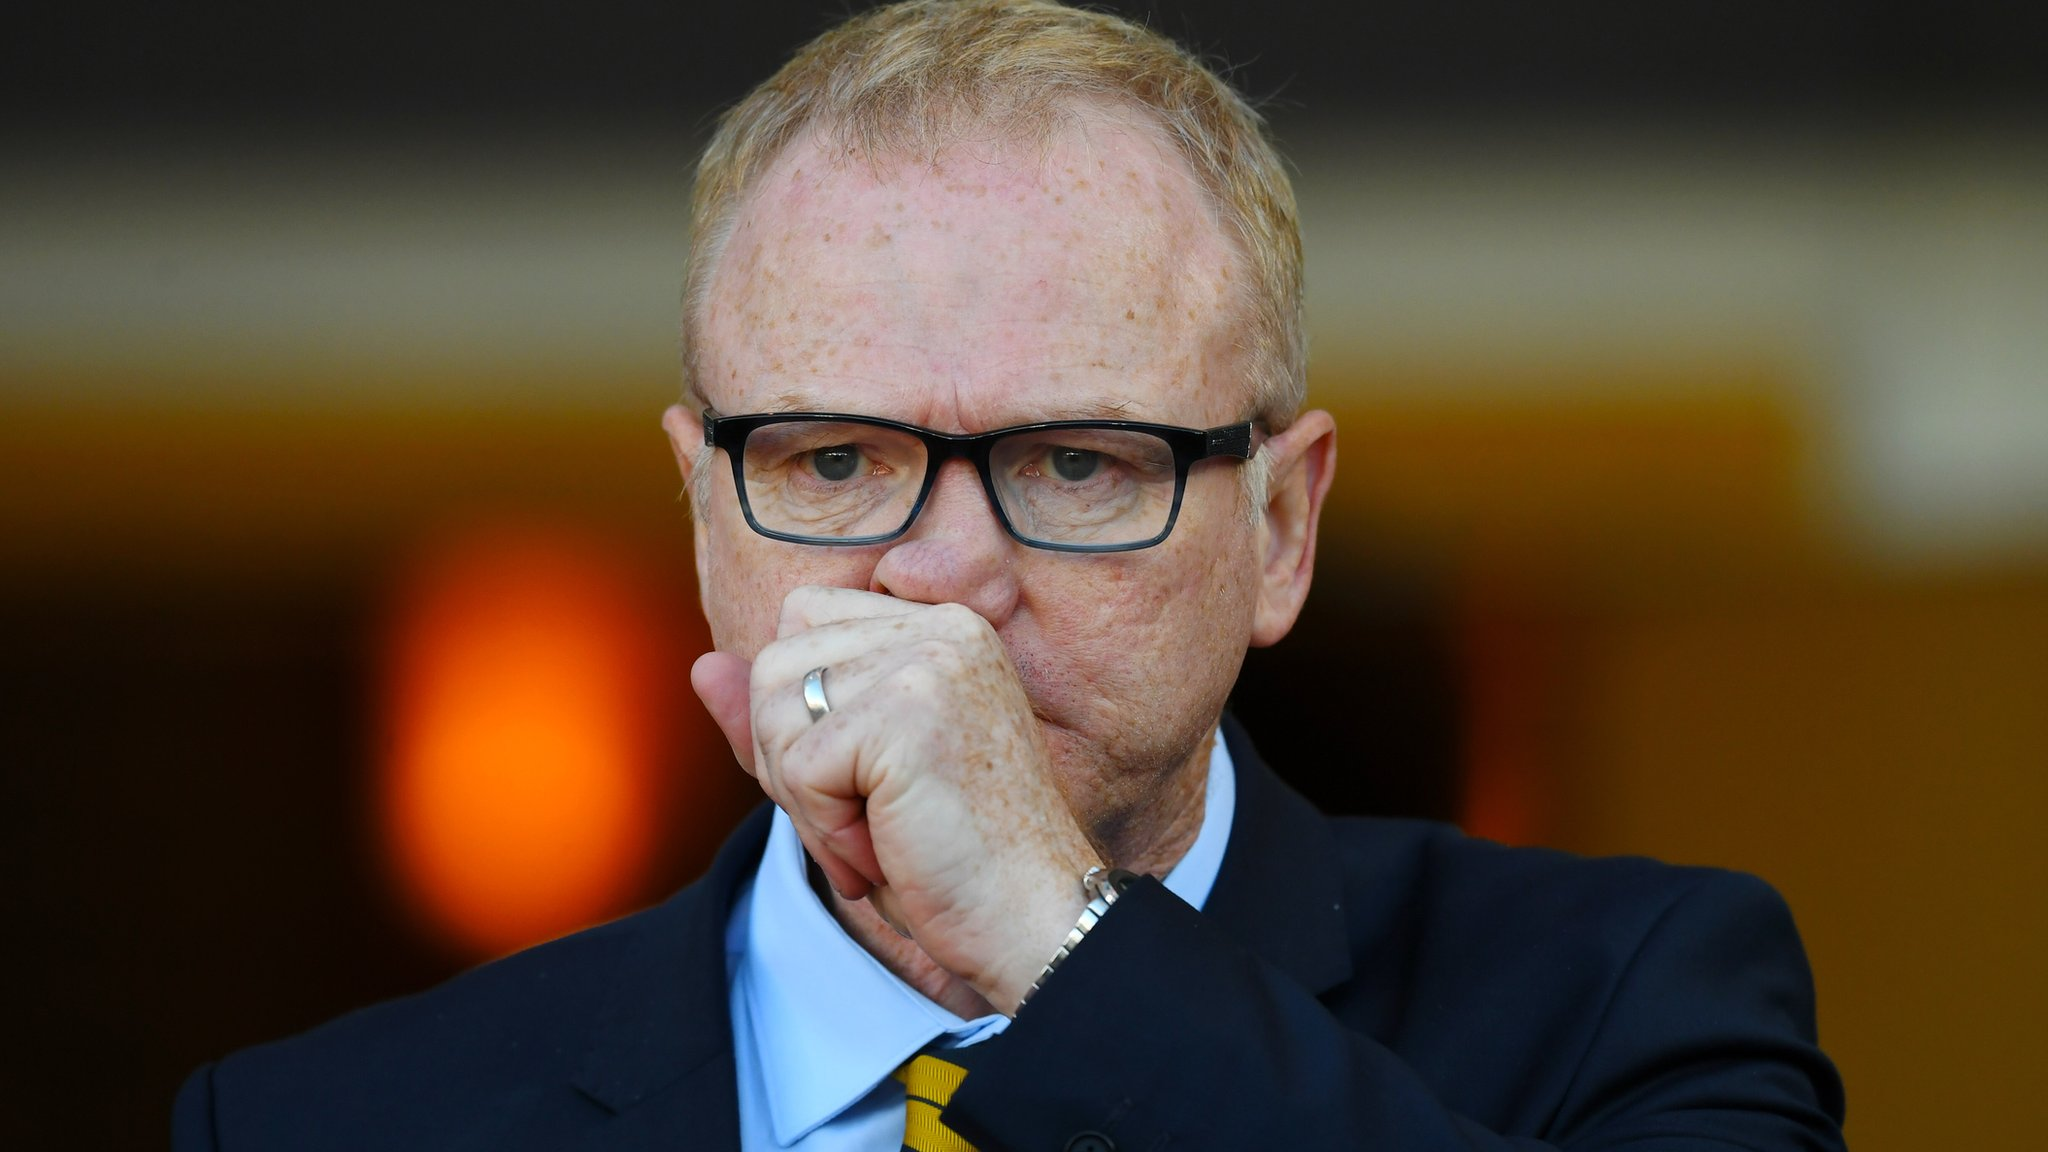 'Sacking McLeish would make no sense, he deserves a full campaign'